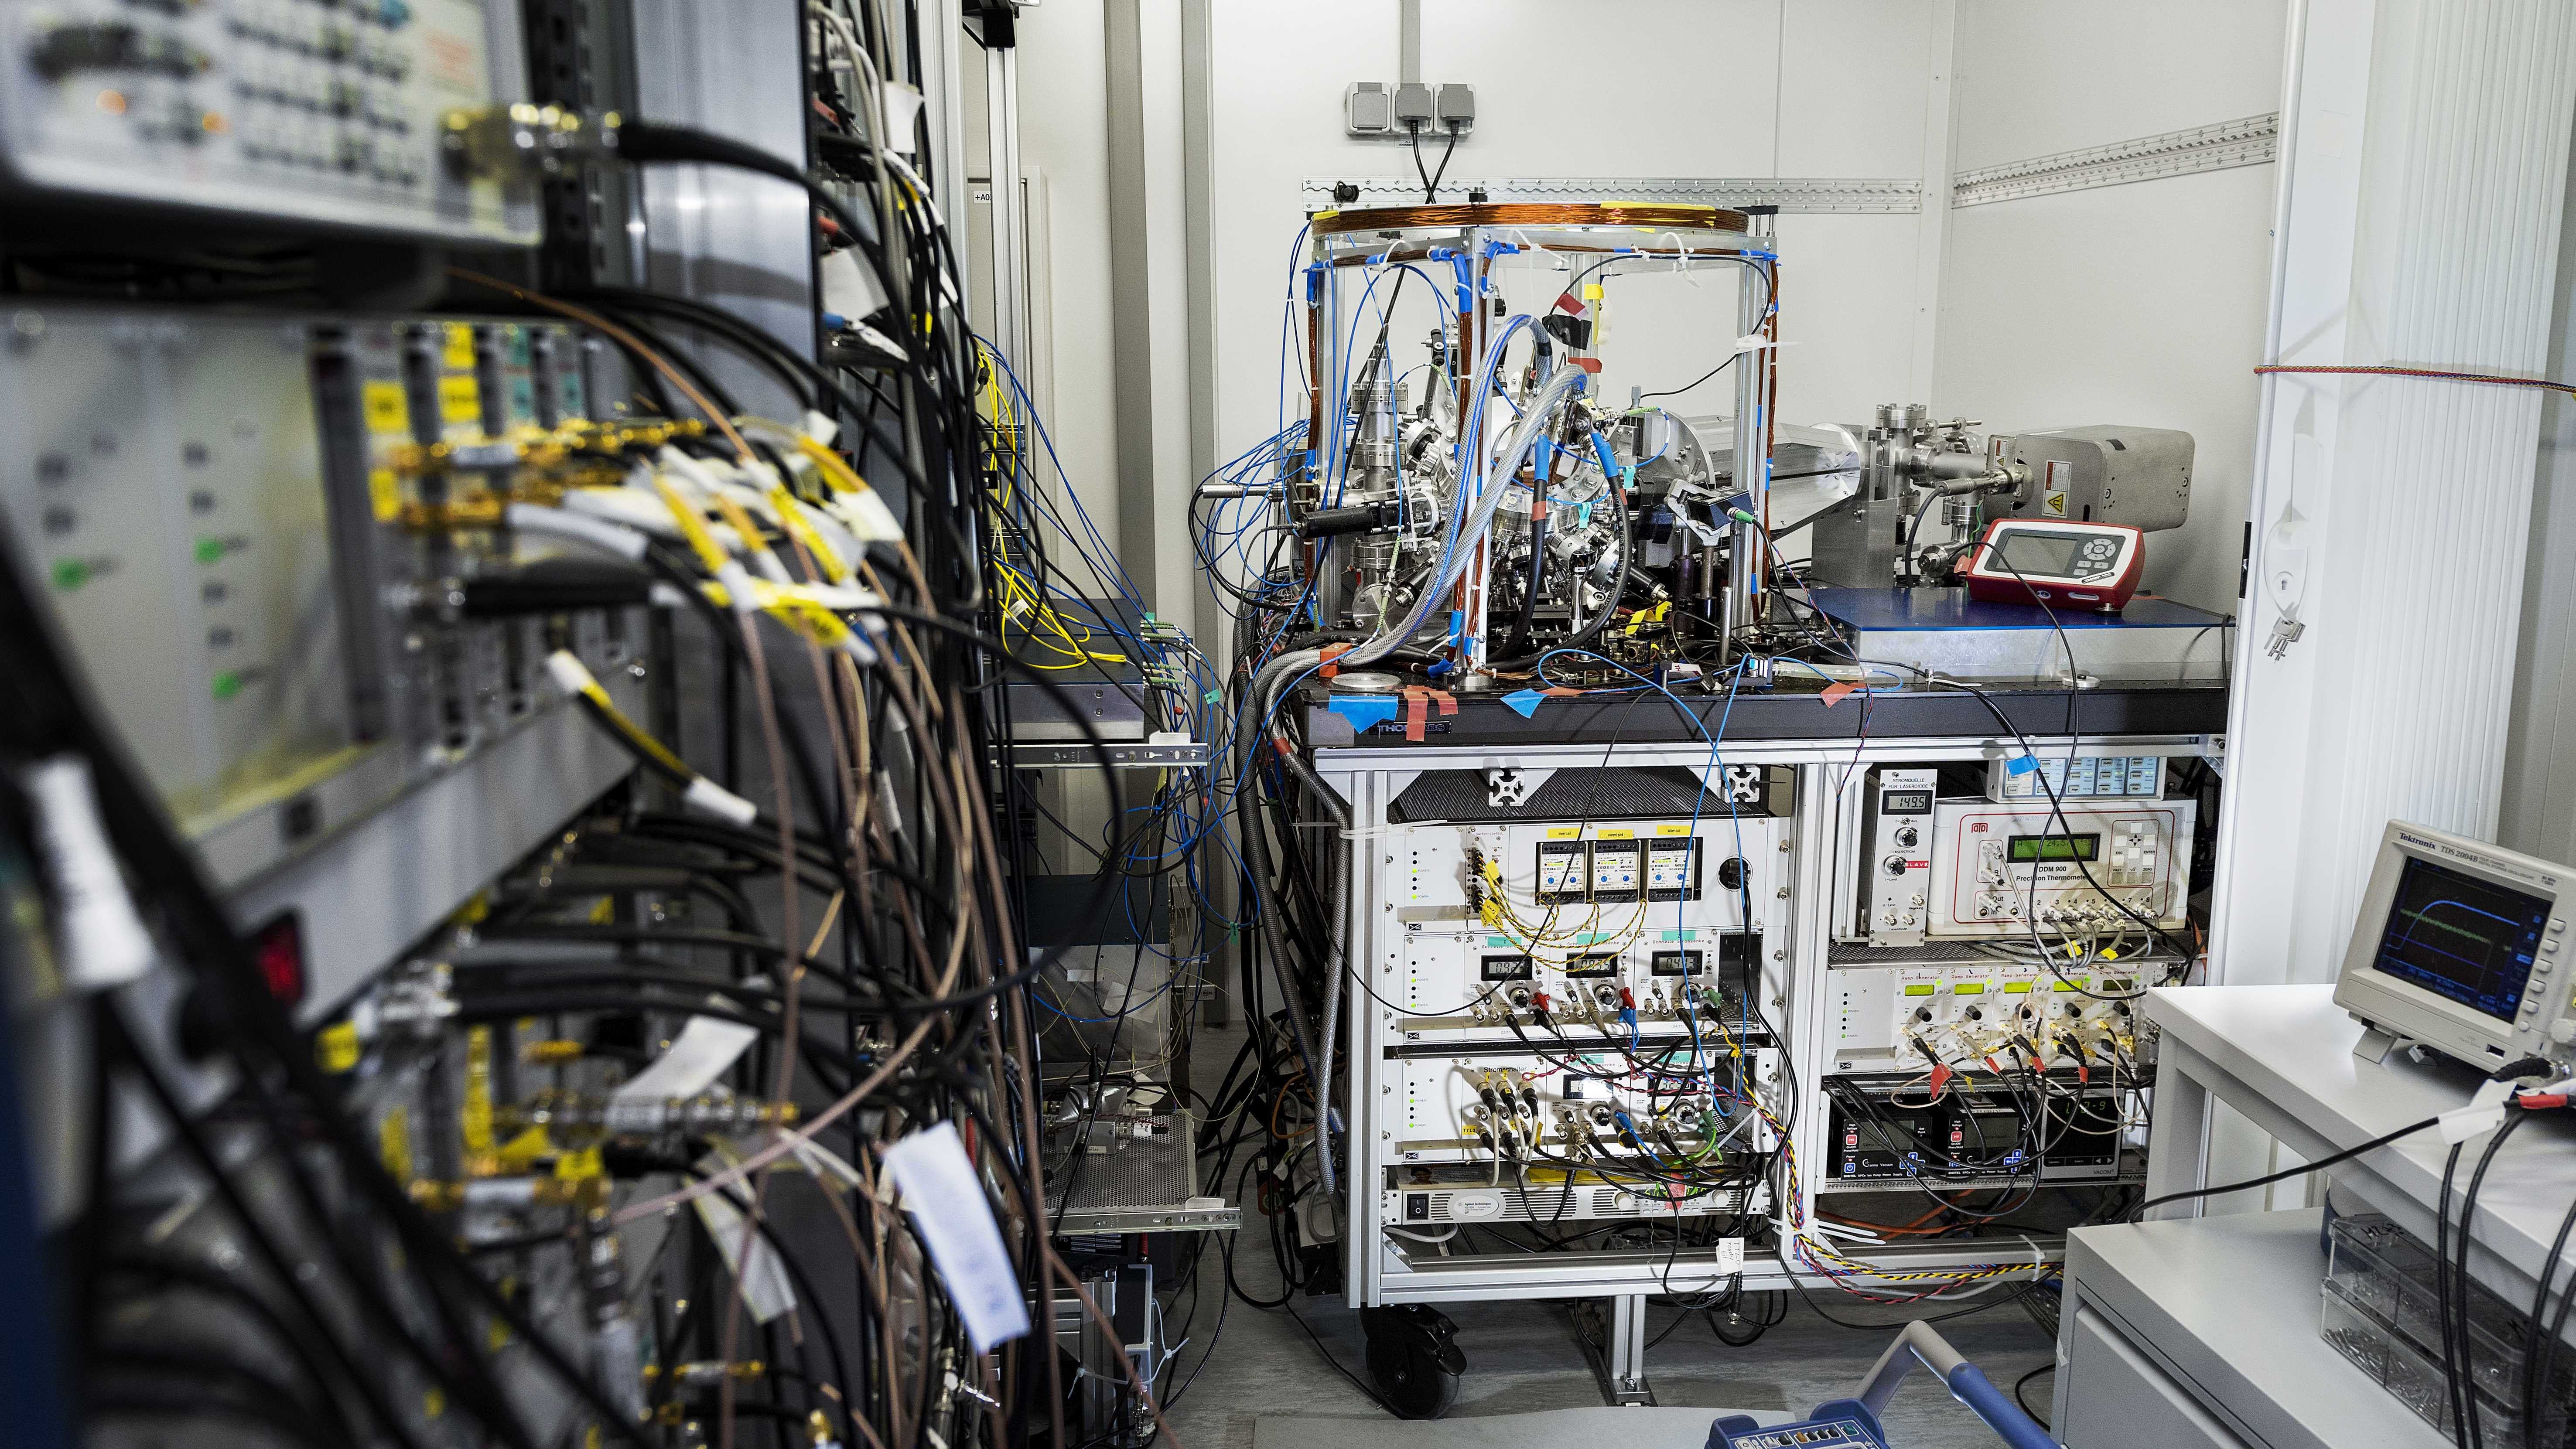 Portable Atomic Clock Makes First Measurement